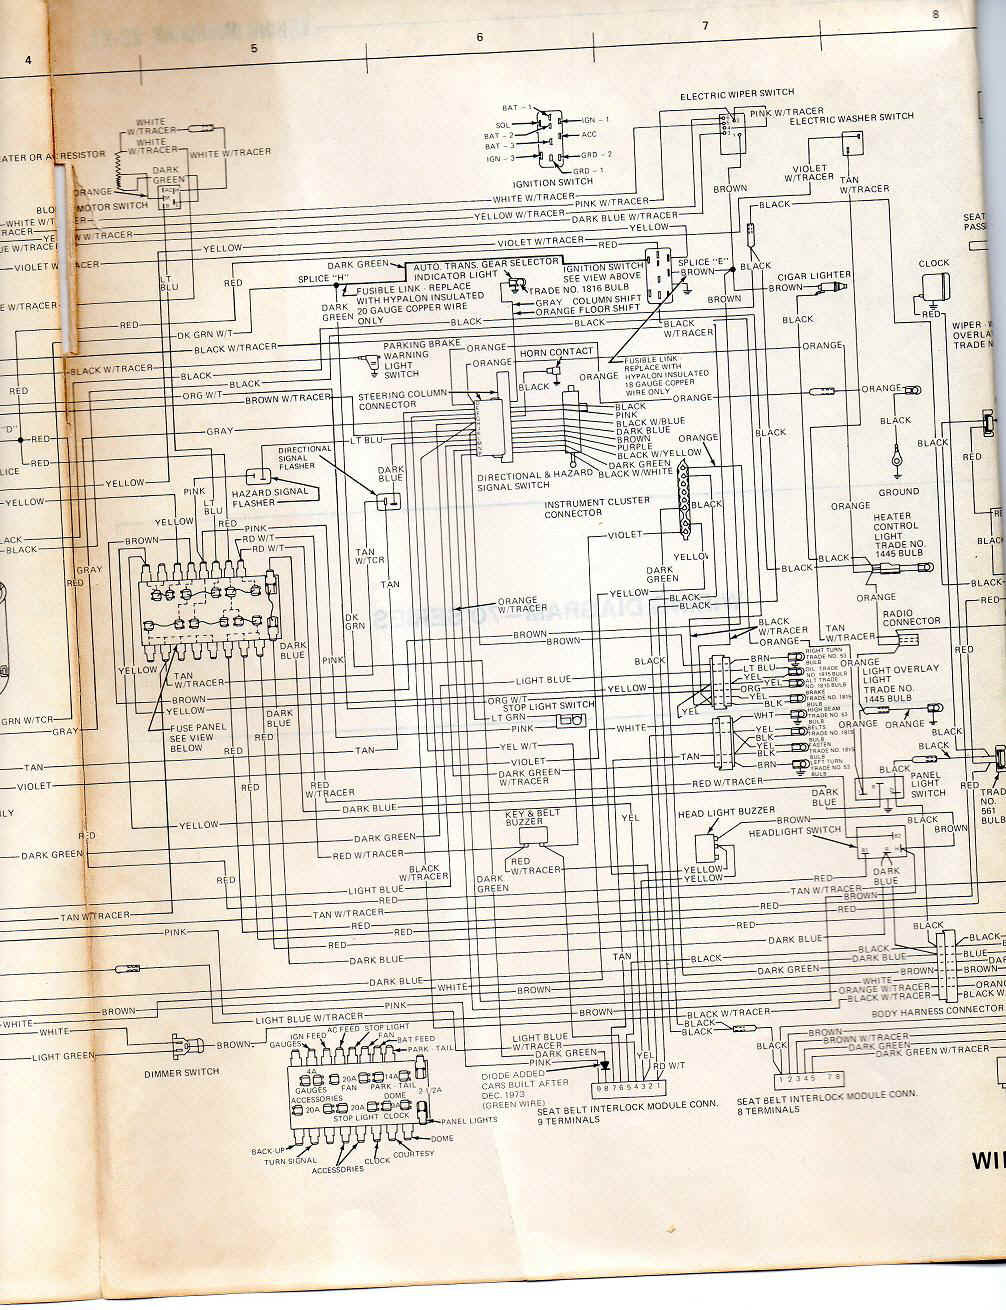 26ebd5 1968 Ford Mustang Wiring Diagram Schematic Wiring Resources